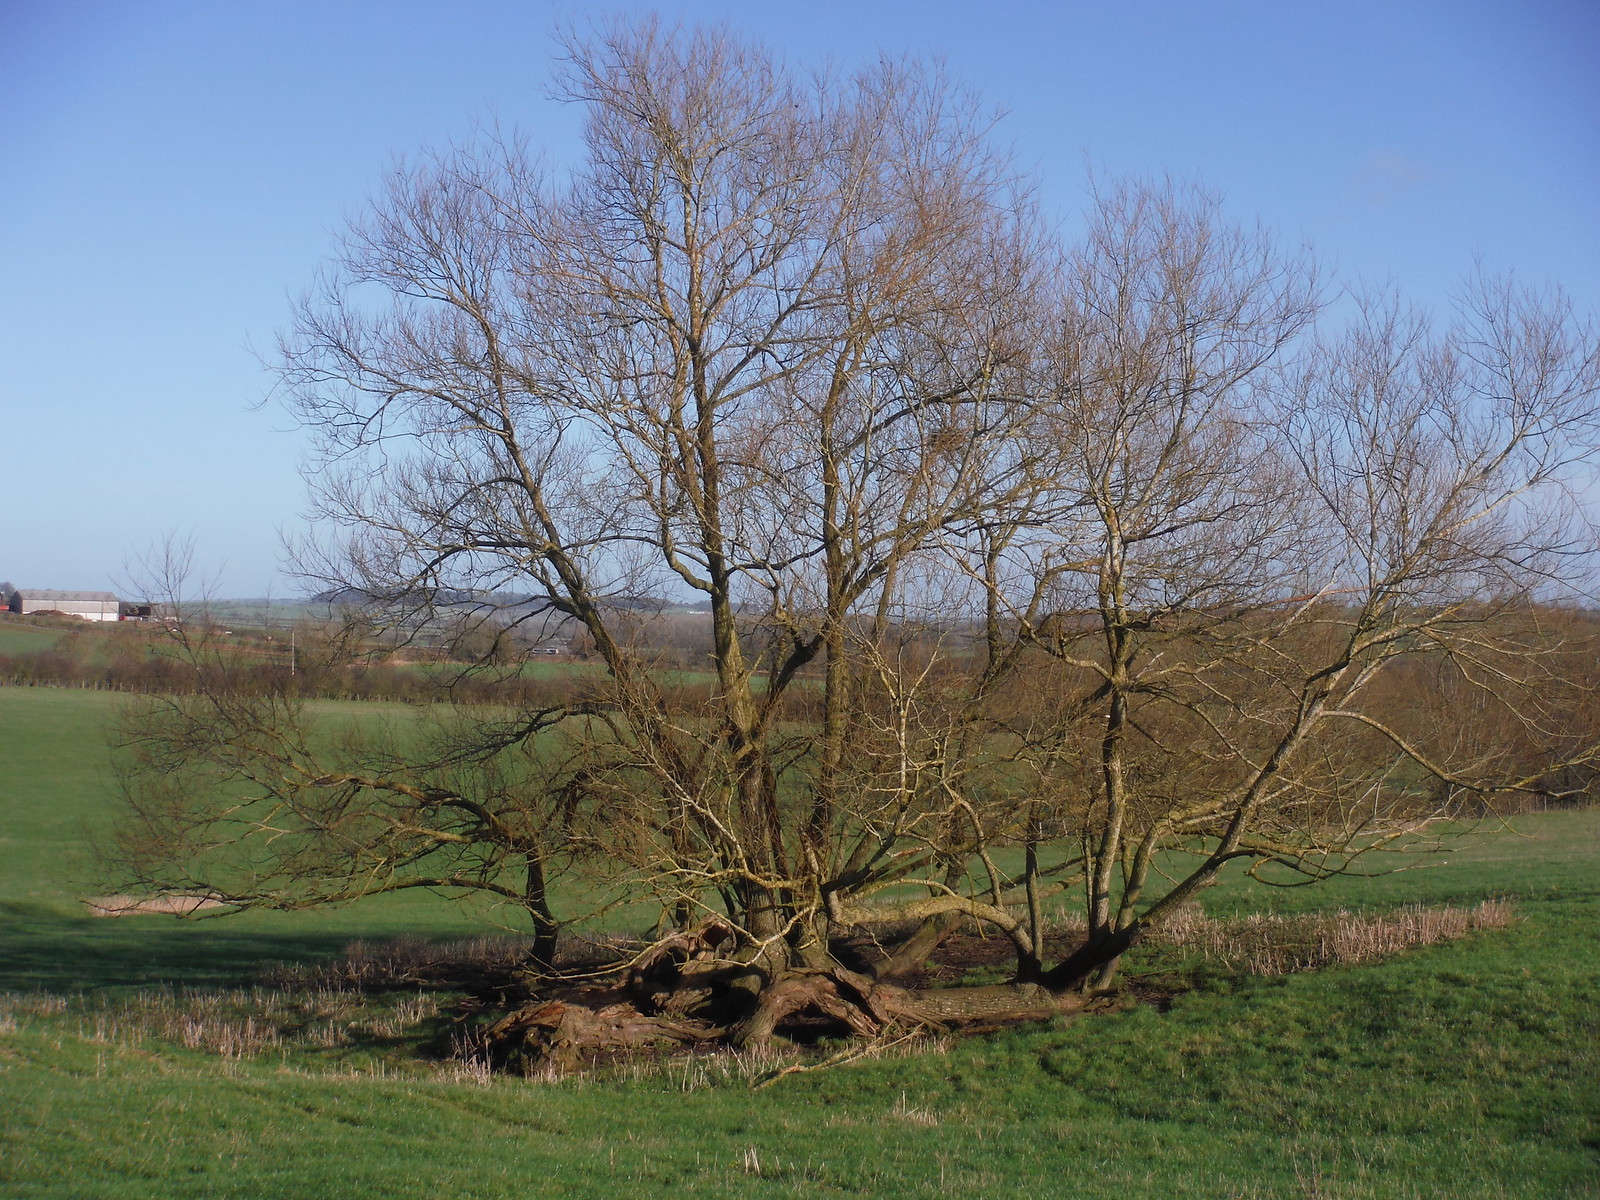 Close-Up of Tree in Valley NE of Long Crendon, on way to Wombwell's Farm SWC Walk 191 Haddenham Circular (via Brill)